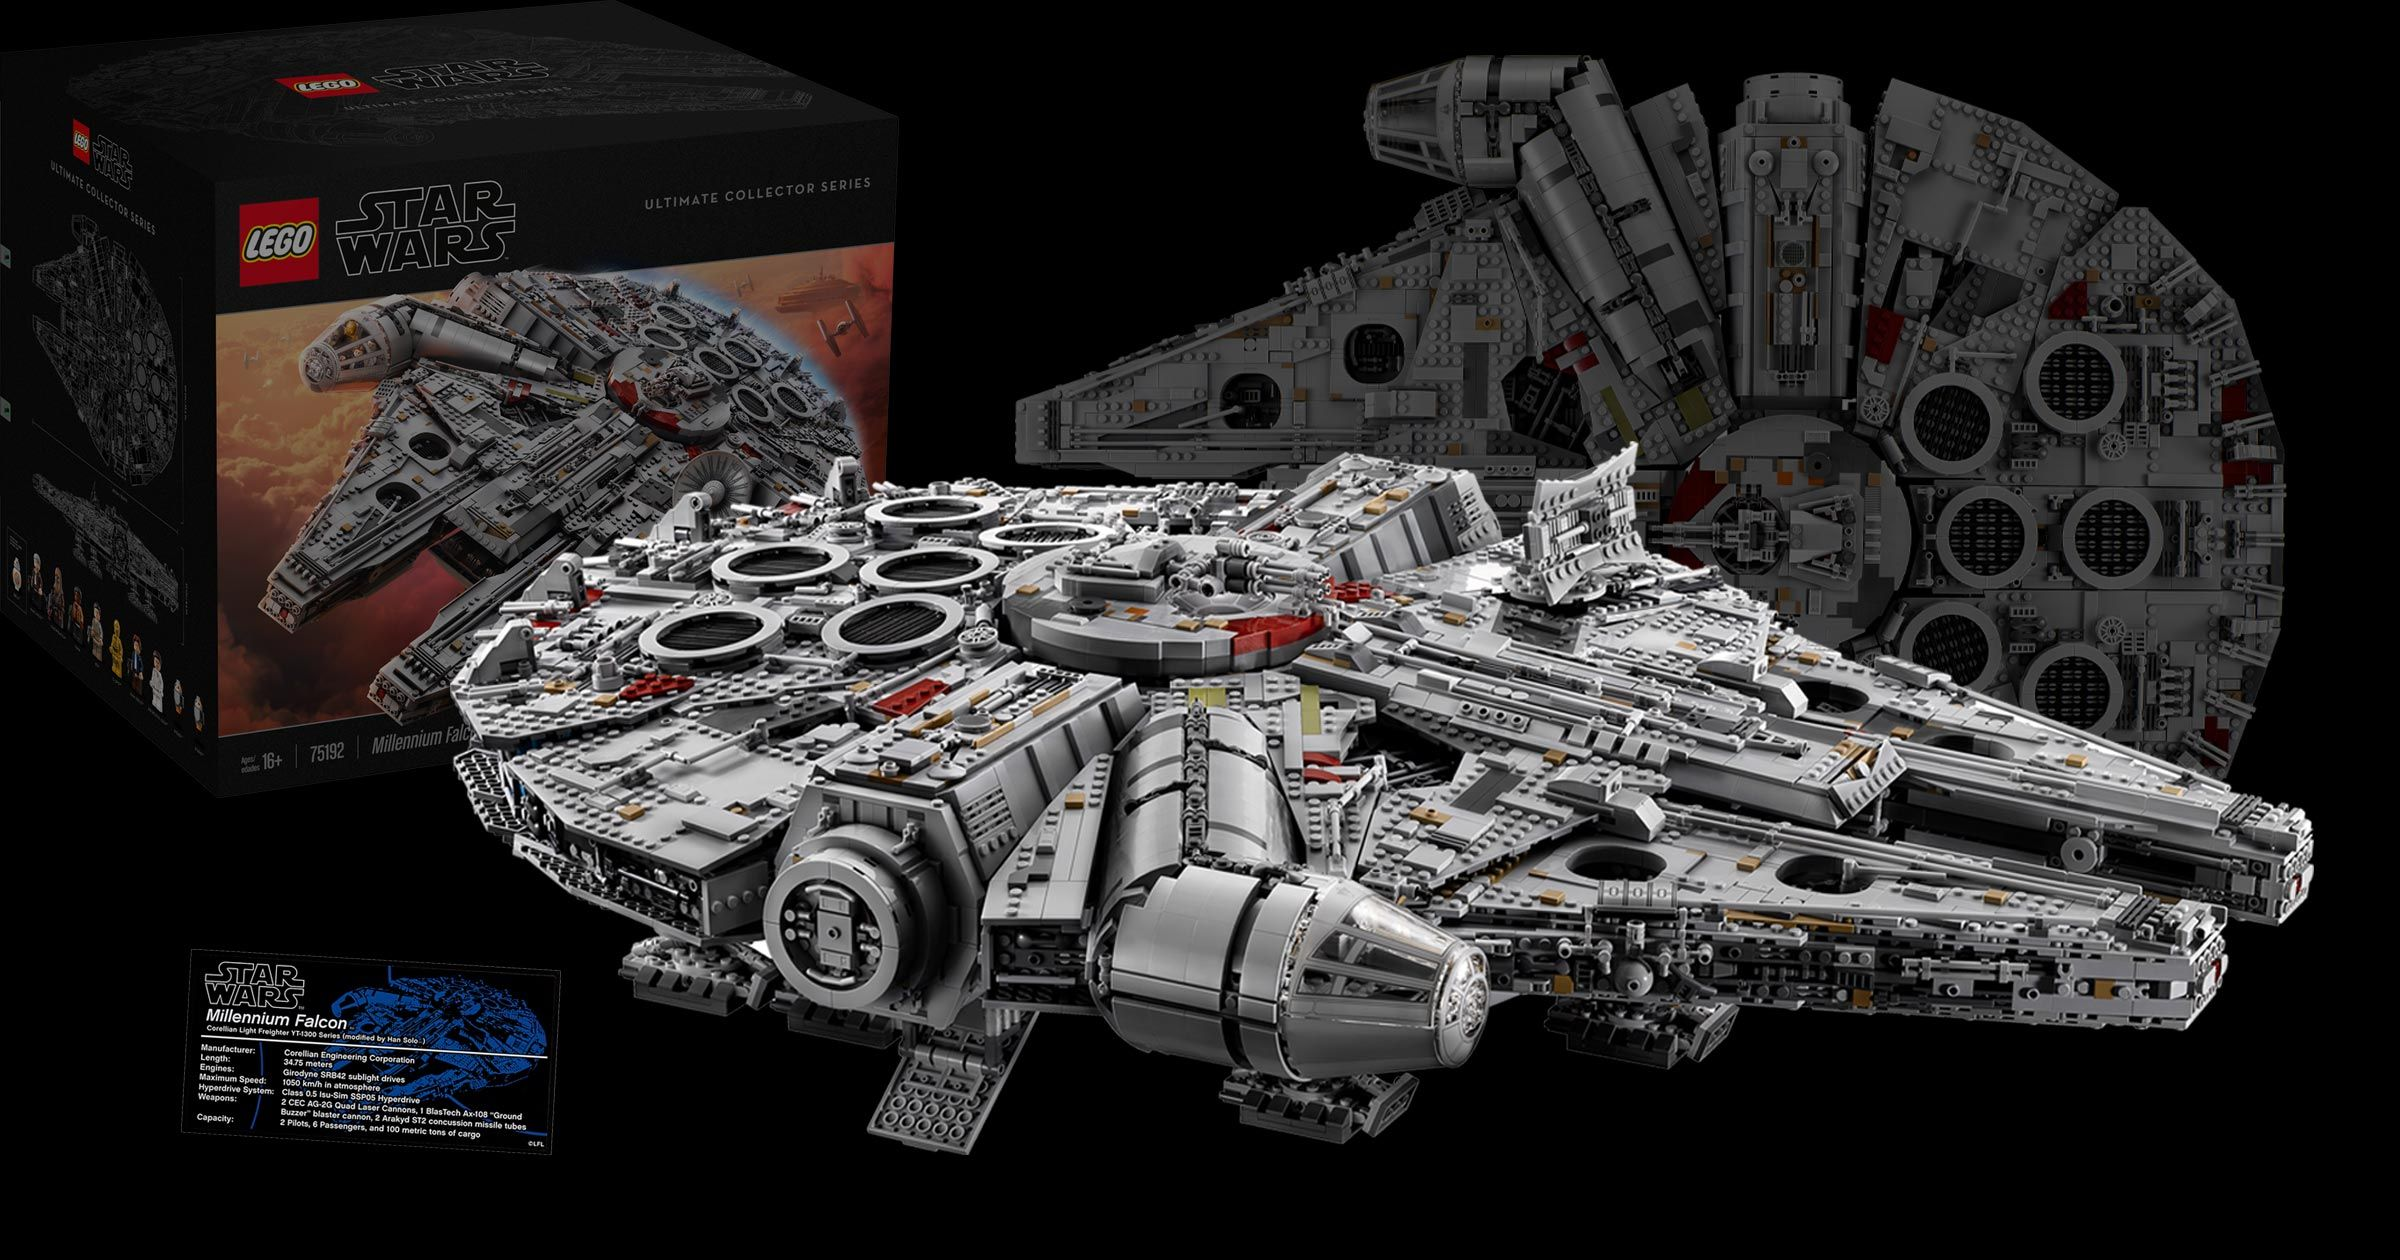 The New 75192 Ucs Millennium Falcon Has 10 Minifigs And 7 541 Pieces Making It The Largest Lego Set Ever